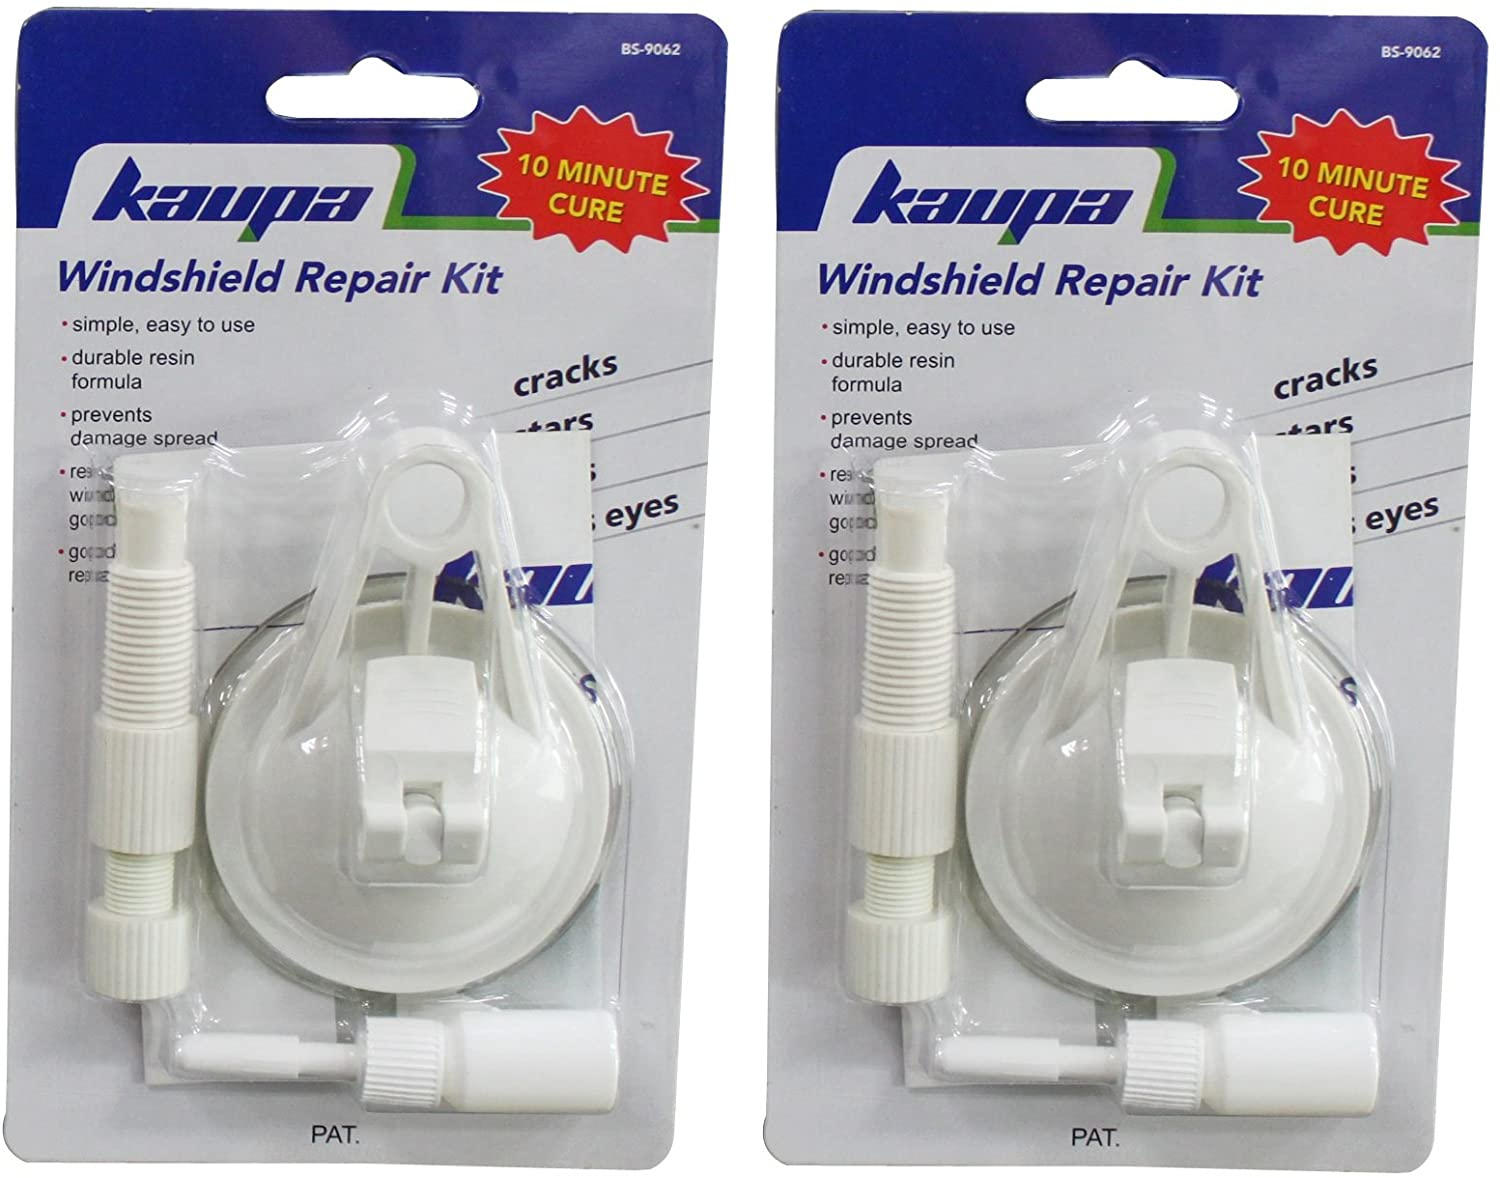 Kauplus Windshield Repair Kit - 2 Pack